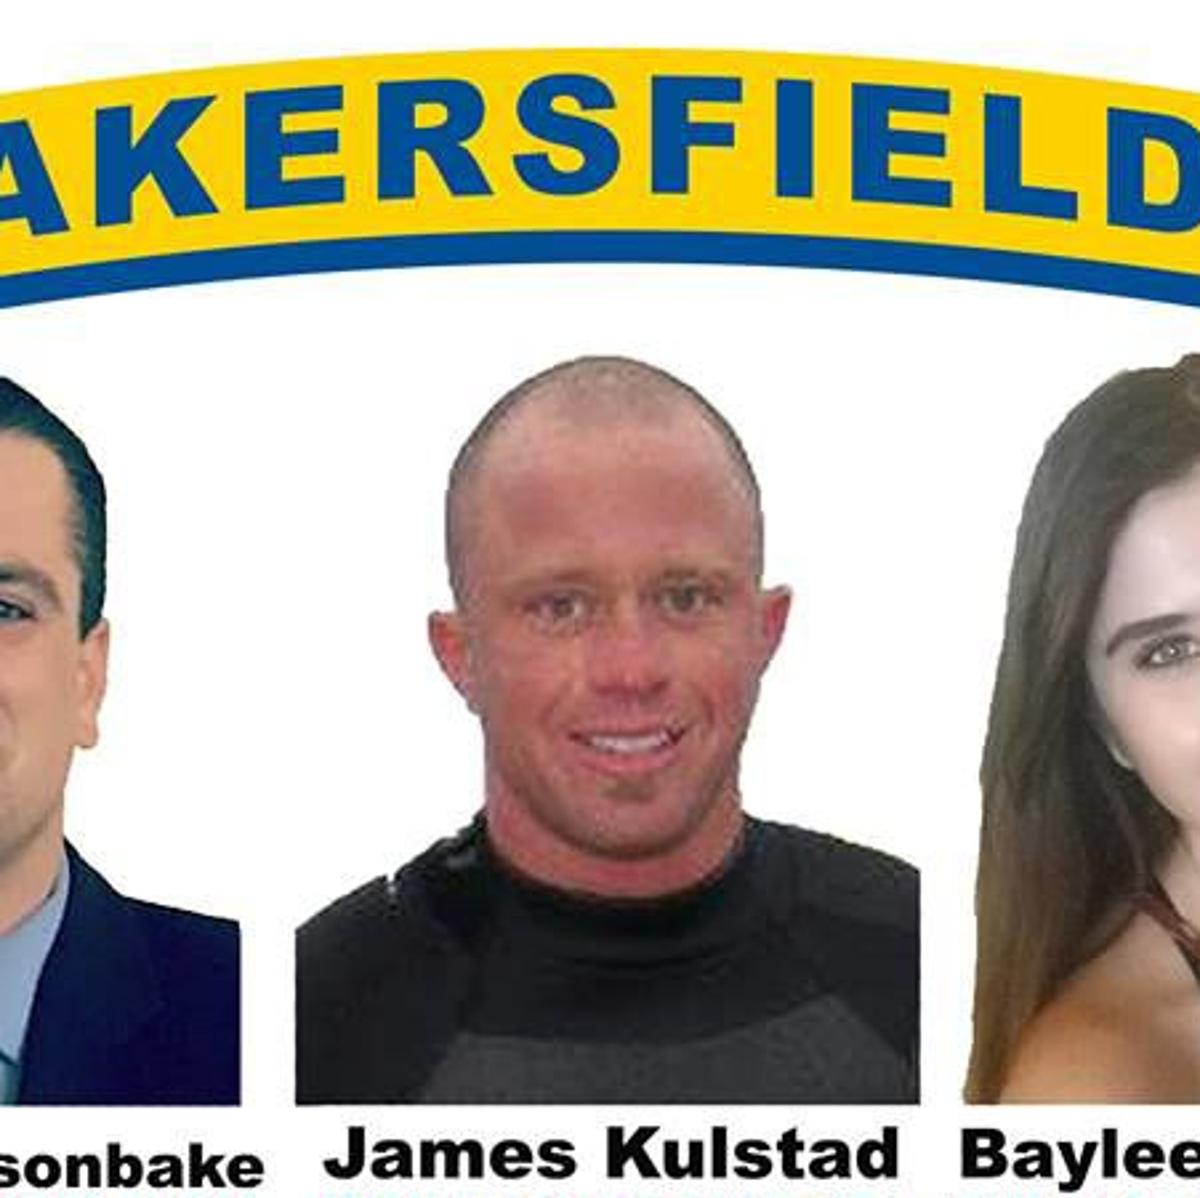 Former FBI profiler describes Bakersfield 3 killer on 'Dr